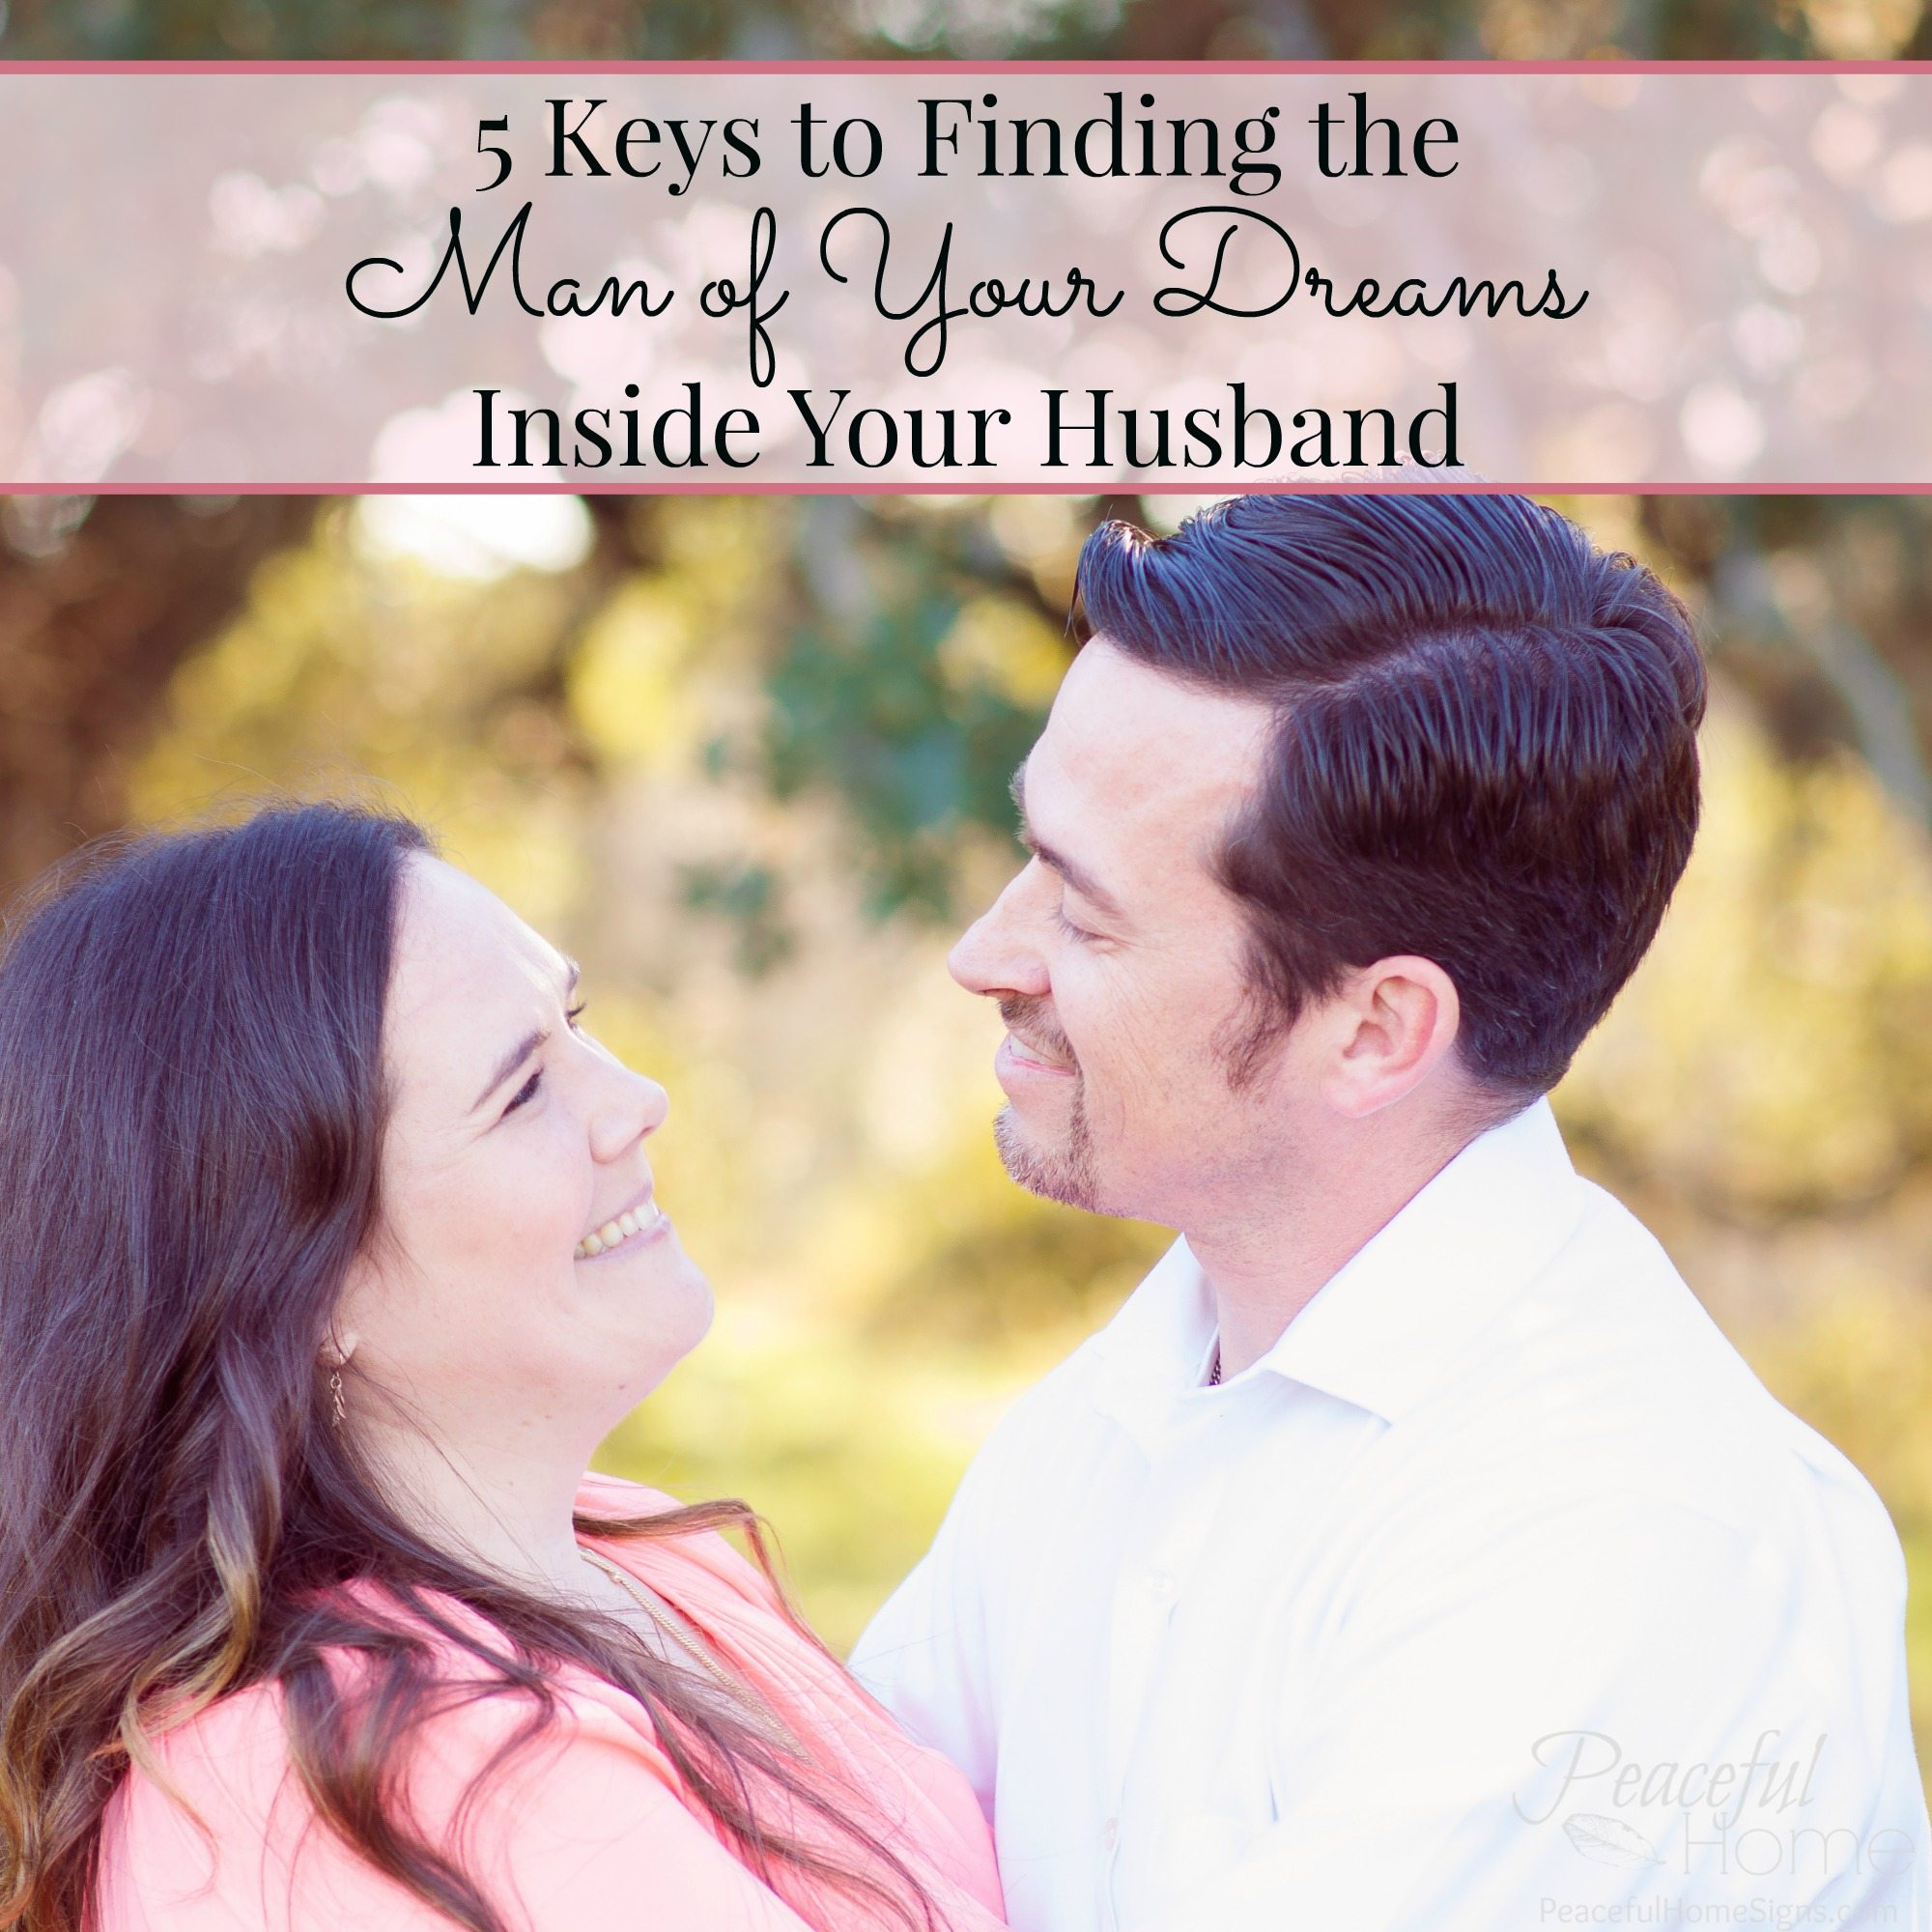 5 Keys to Finding the Man of Your Dreams Inside Your Husband